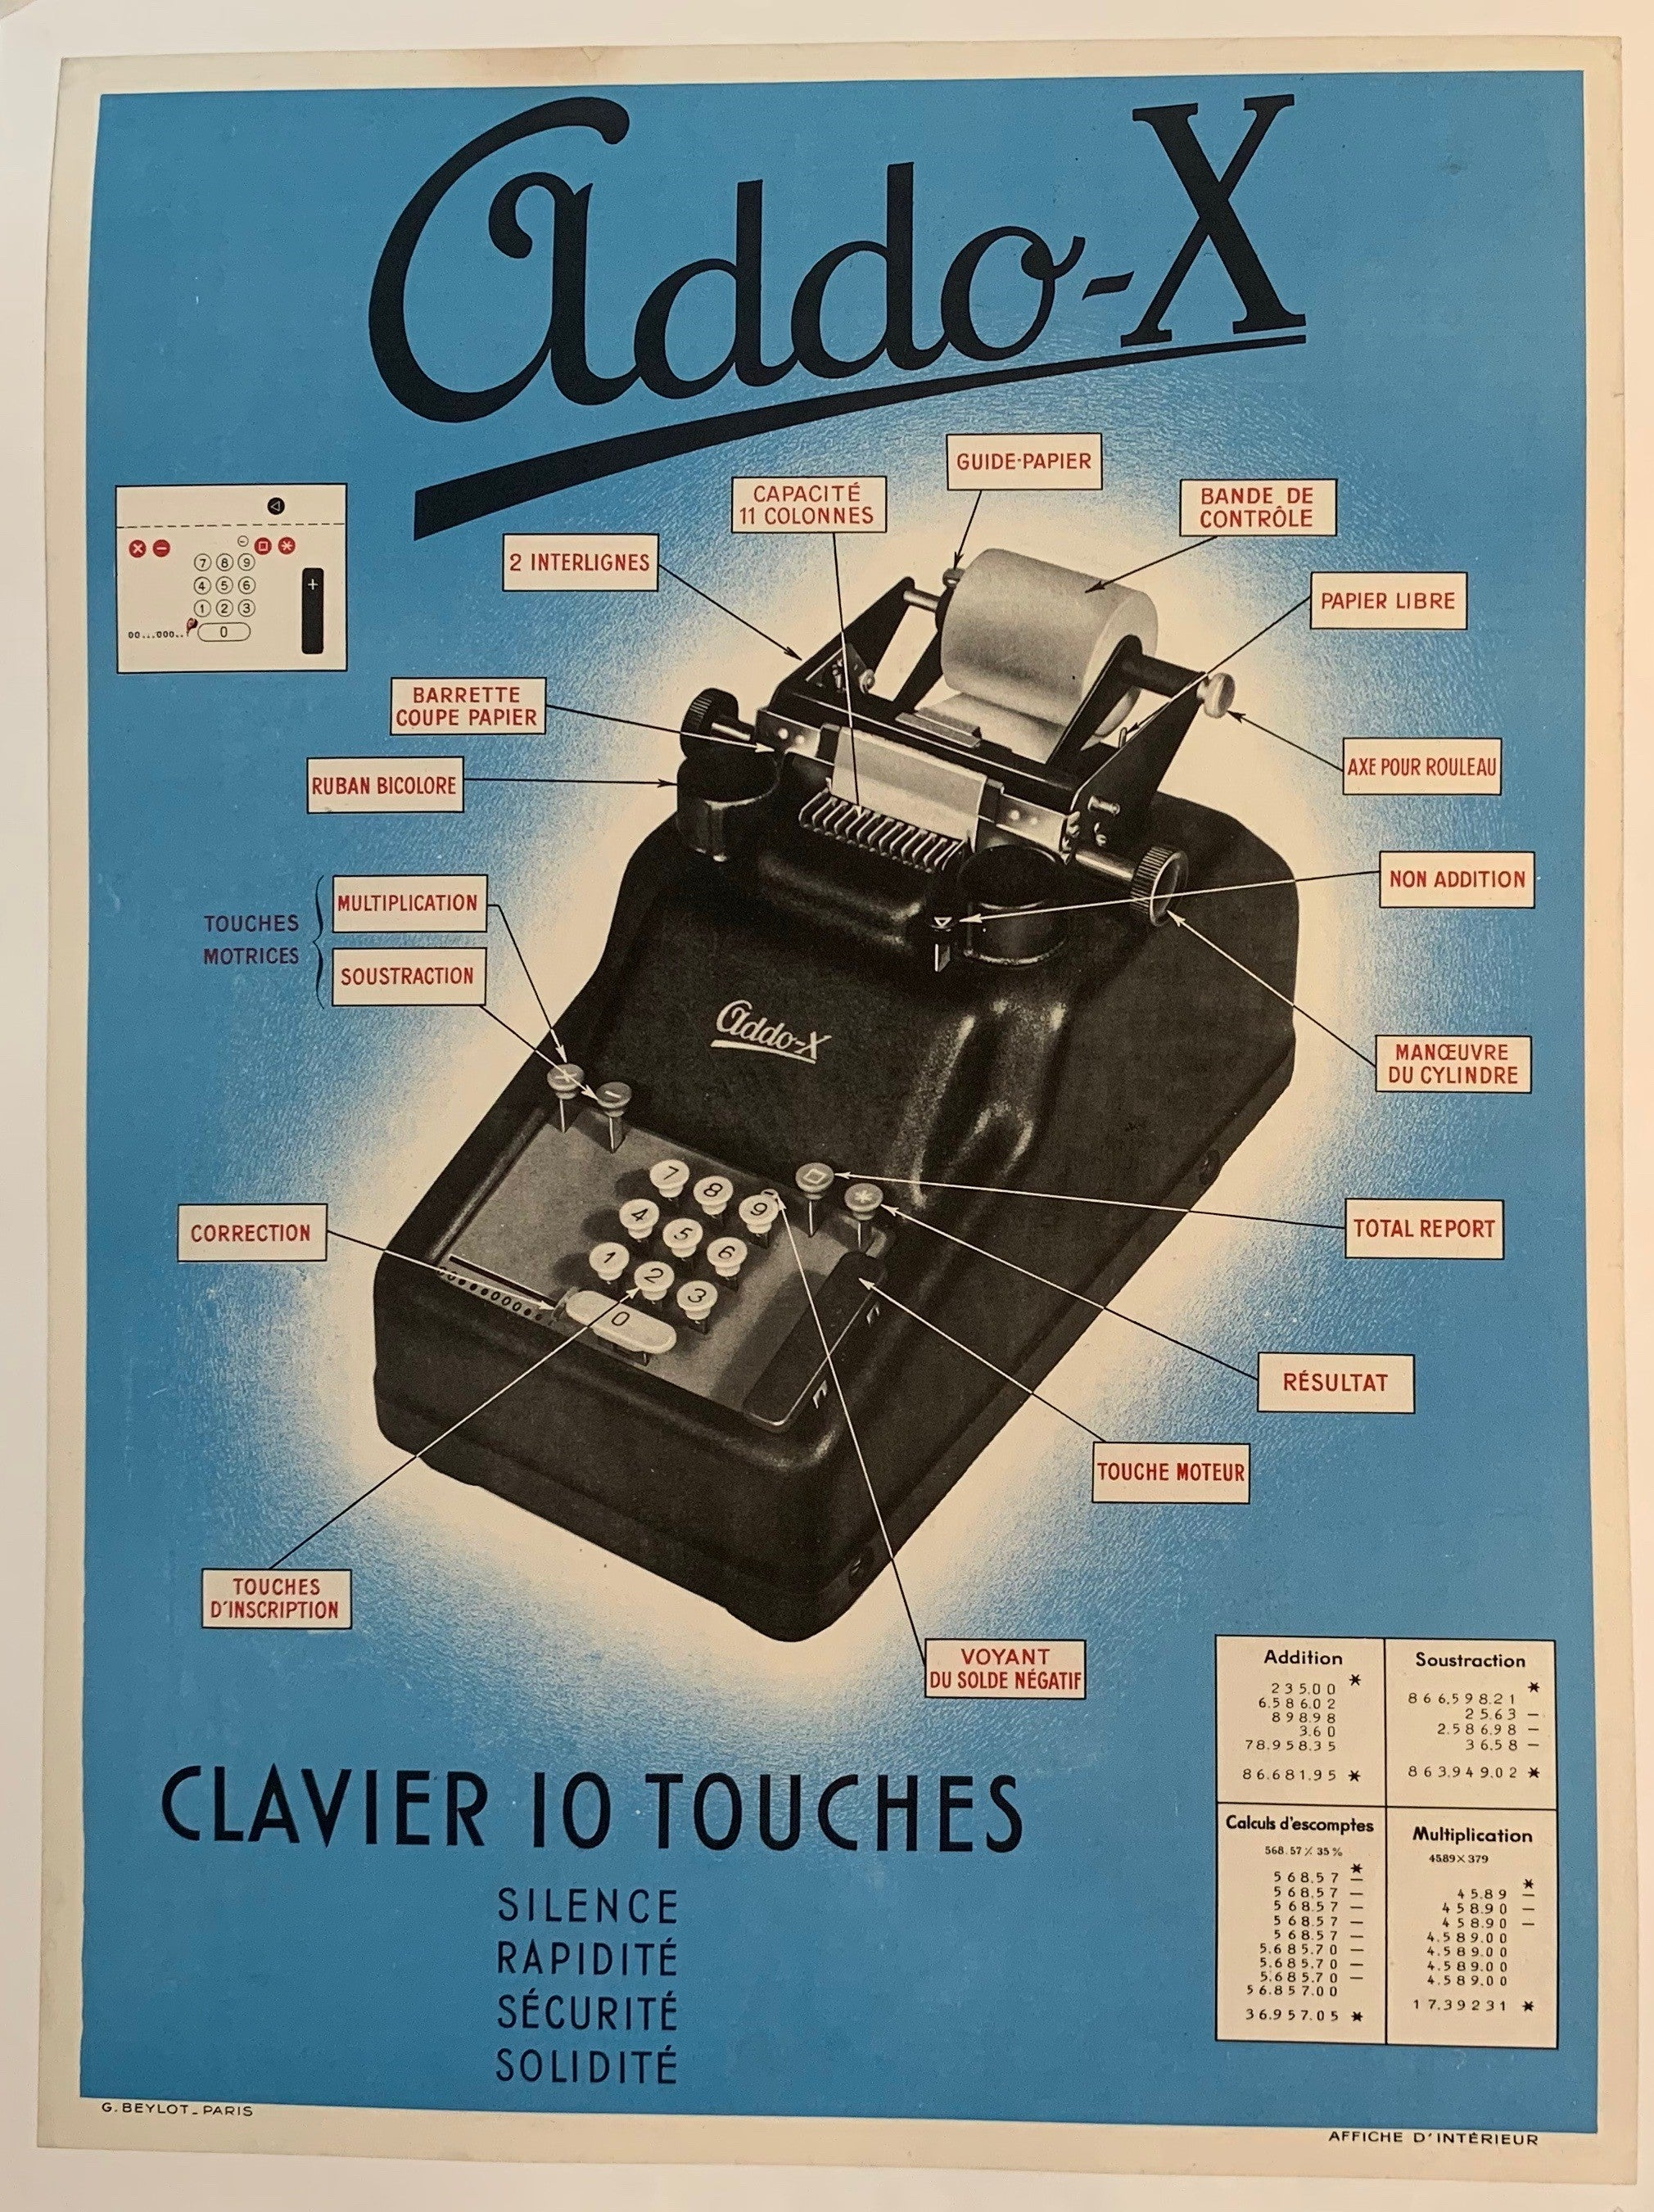 Addo-X Clavier 10 Touches